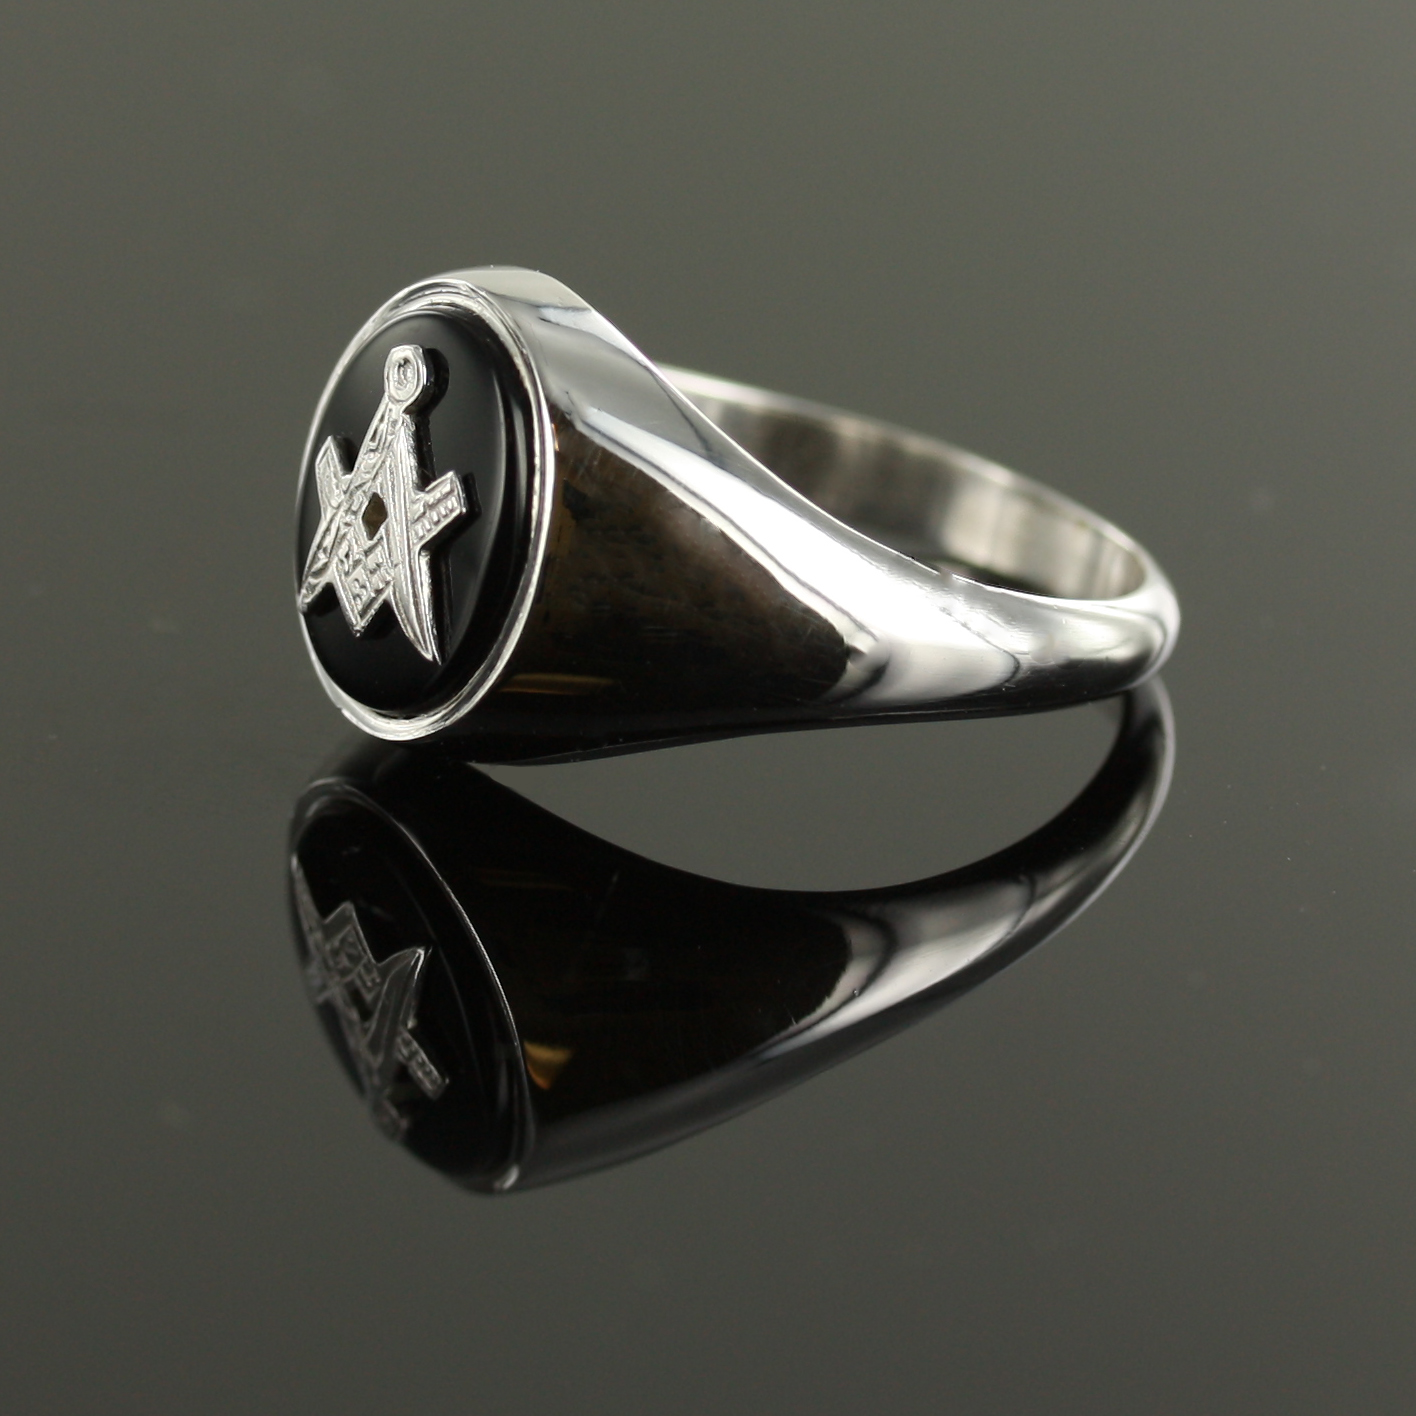 Solid Silver Onyx Masonic Ring Square and Compass